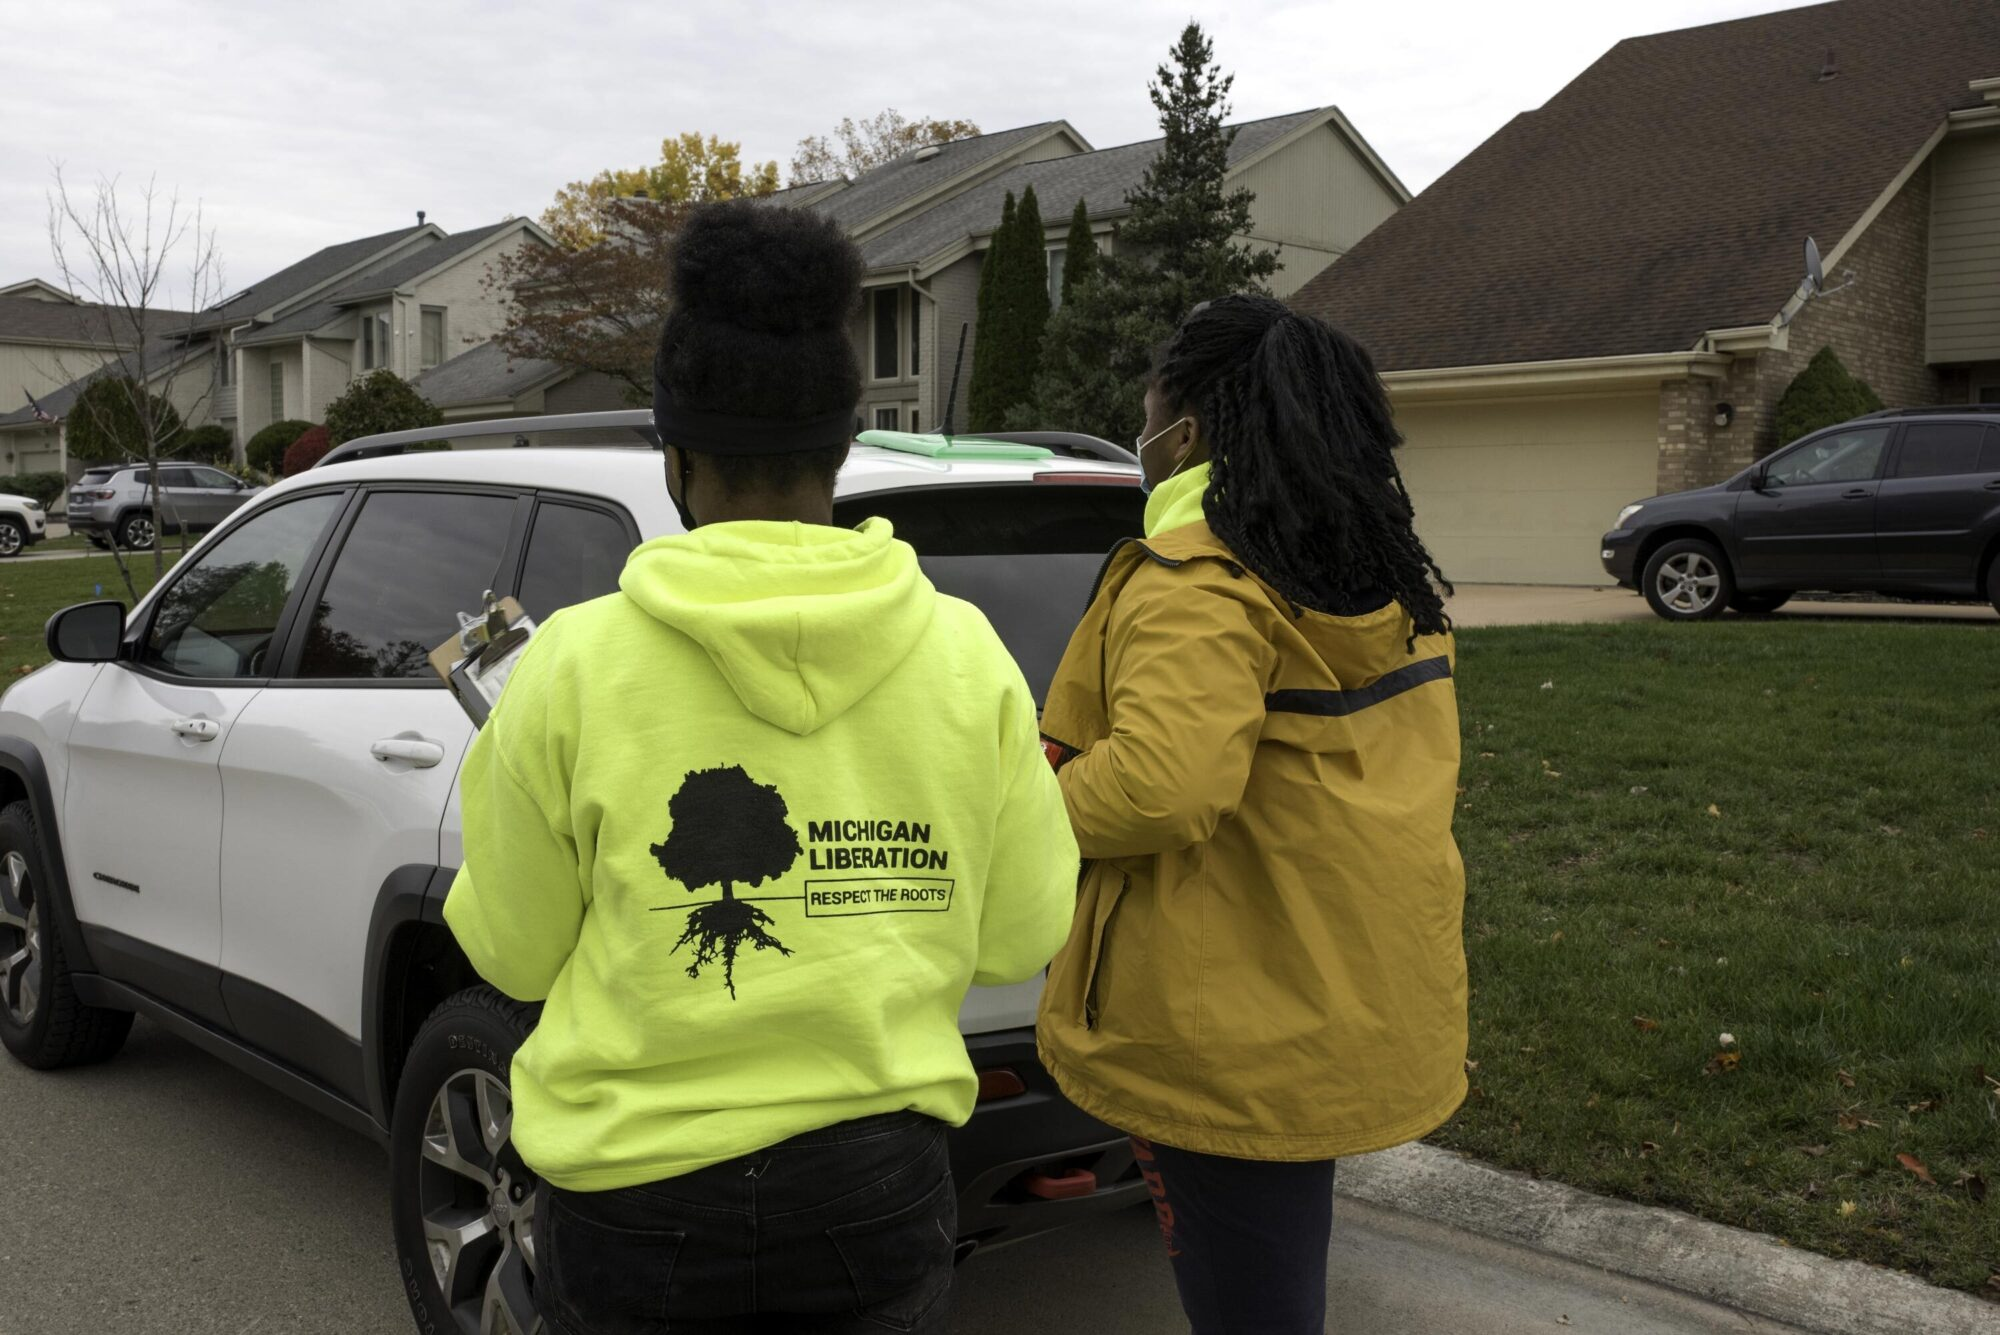 Two girls passing out campaign literature on a suburban street.